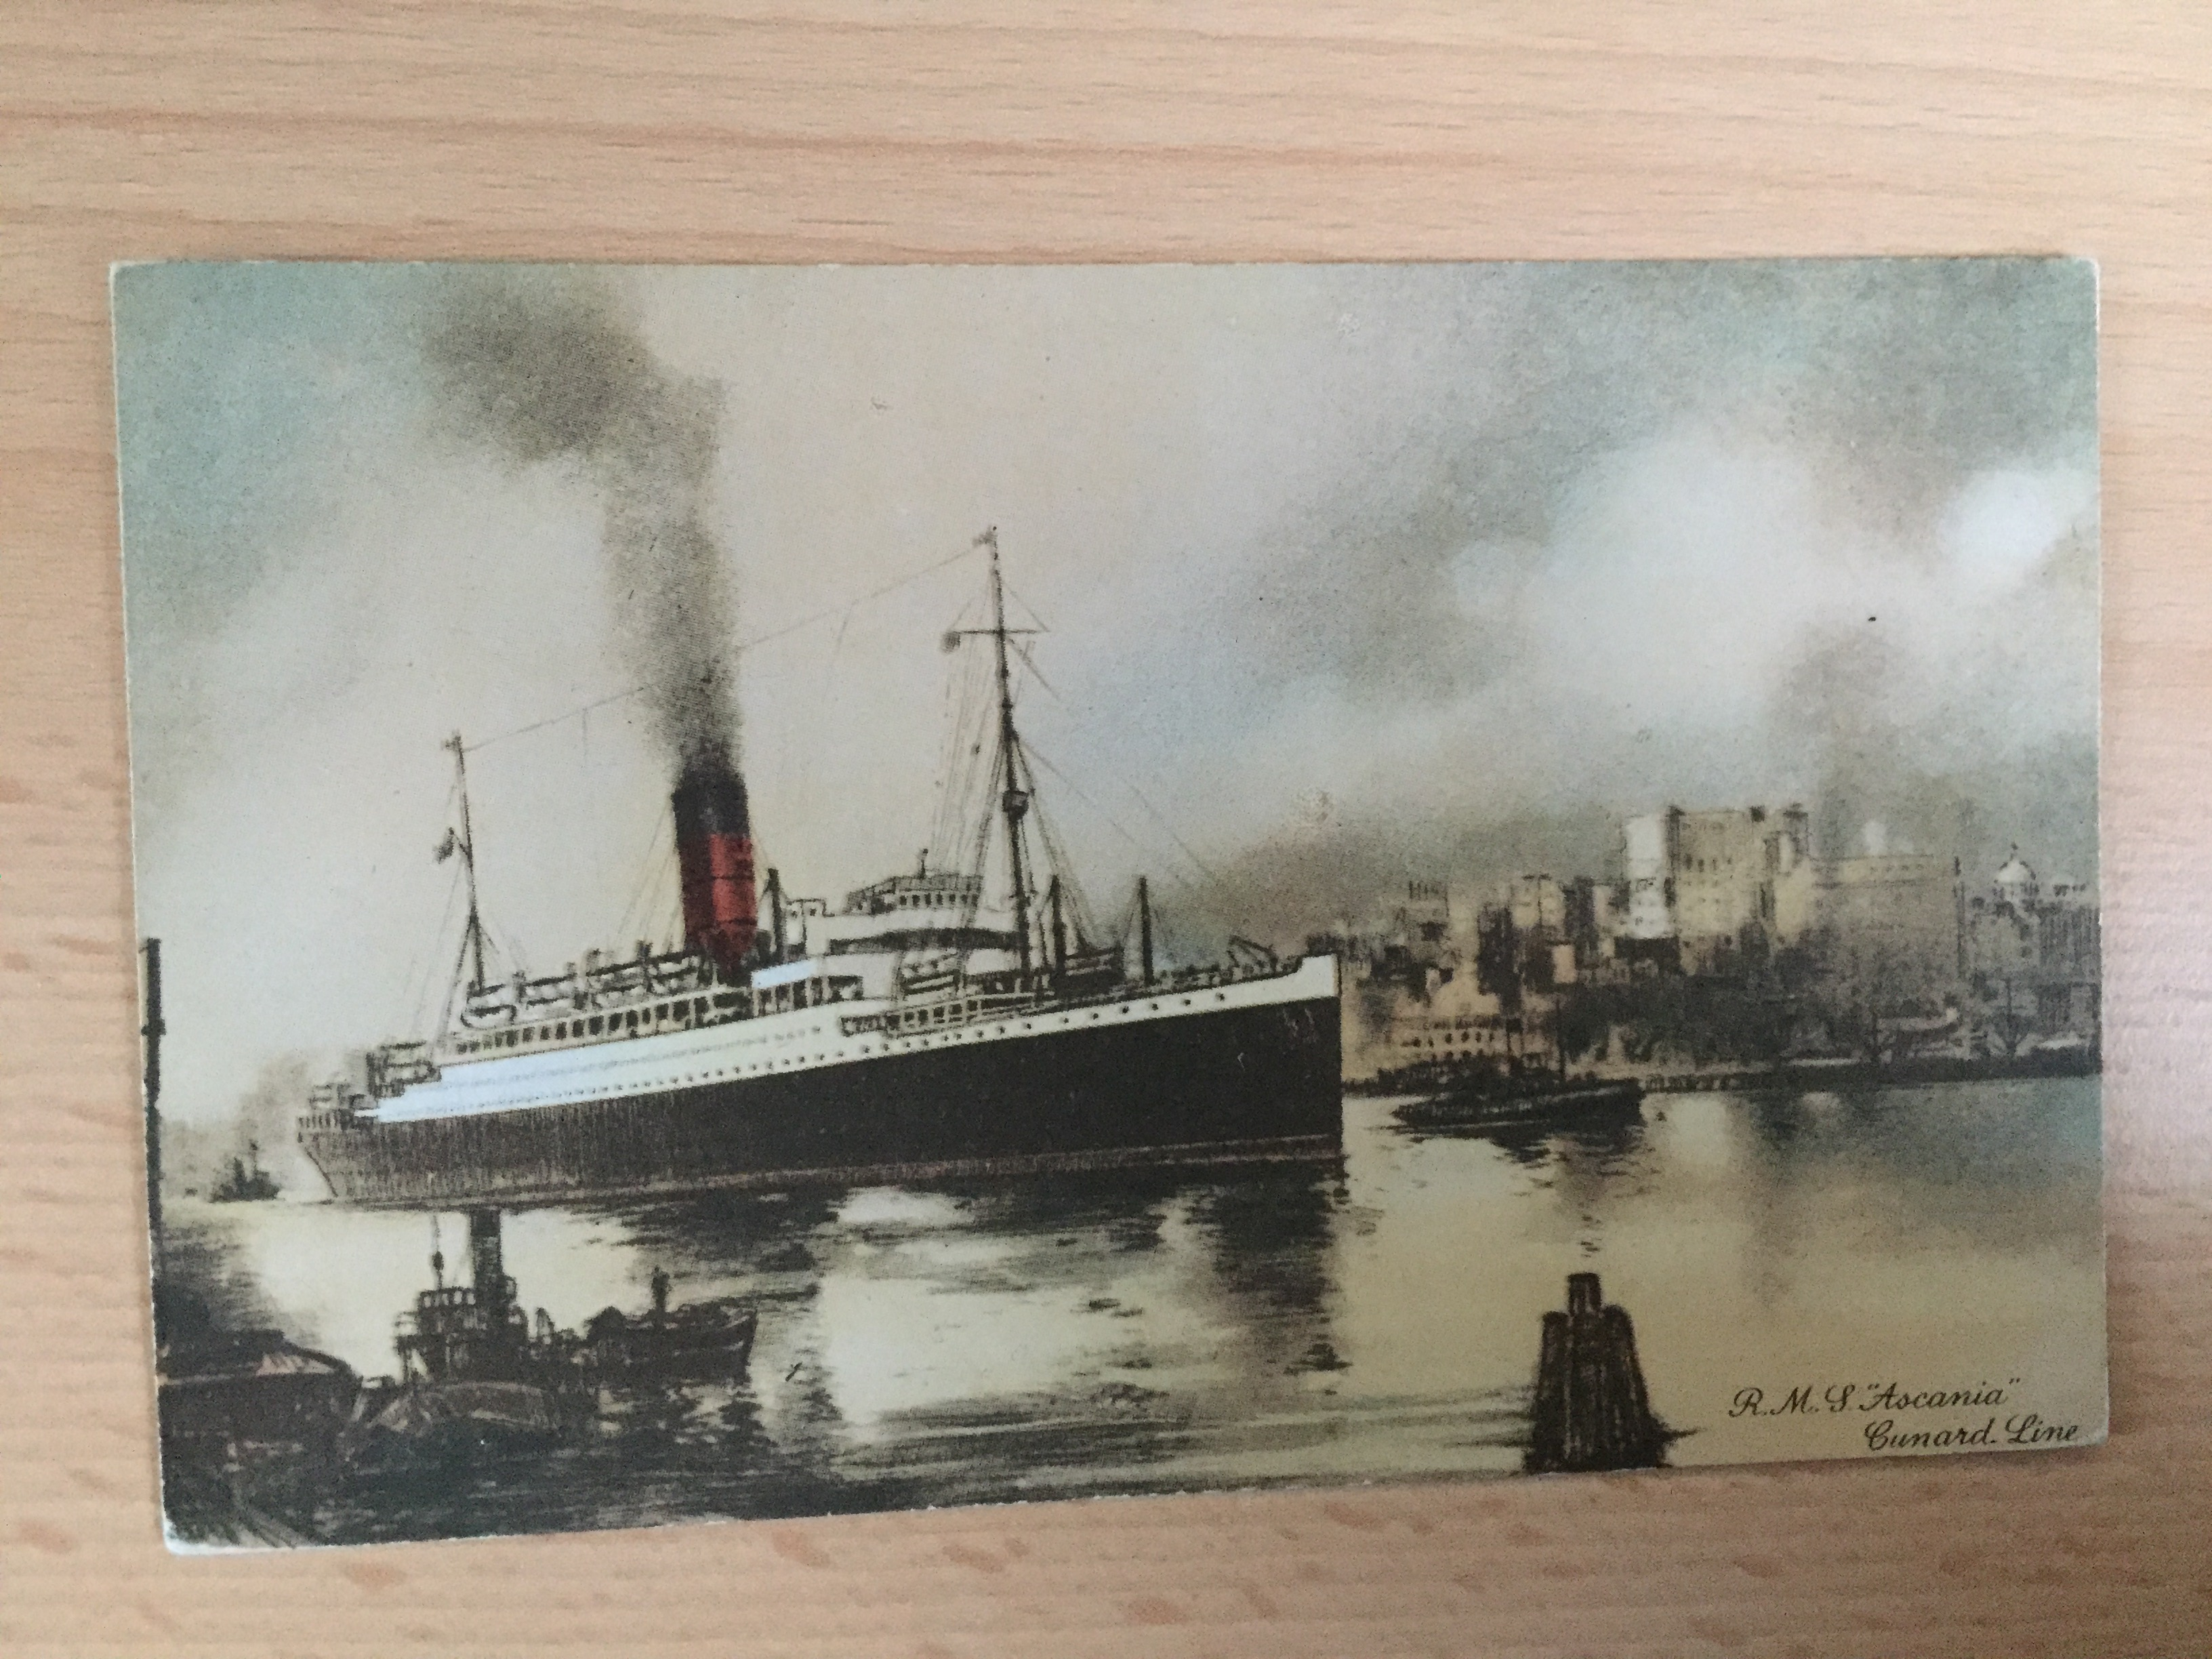 EARLY SEPIA COLOUR POSTCARD FROM THE RMS ASCANIA OF THE CUNARD LINE